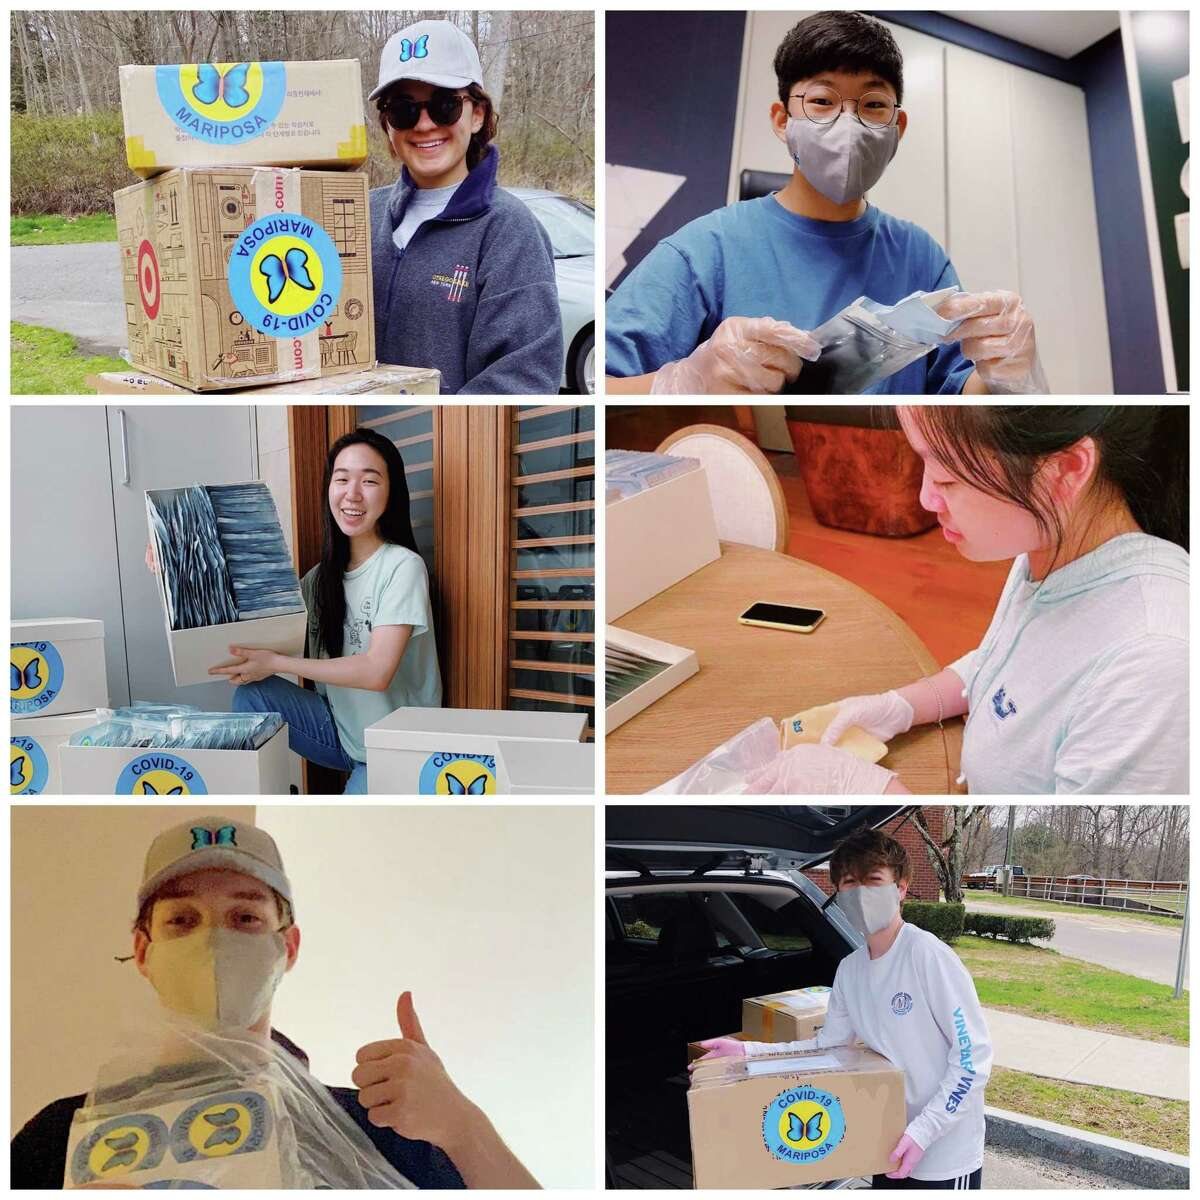 A group of Rumsey Hall School graduates, led by student Elina Choi, founded the Mariposa Mask Initiative and have given away more than 2,000 masks and raised more than $8,000 to help others during the pandemic.